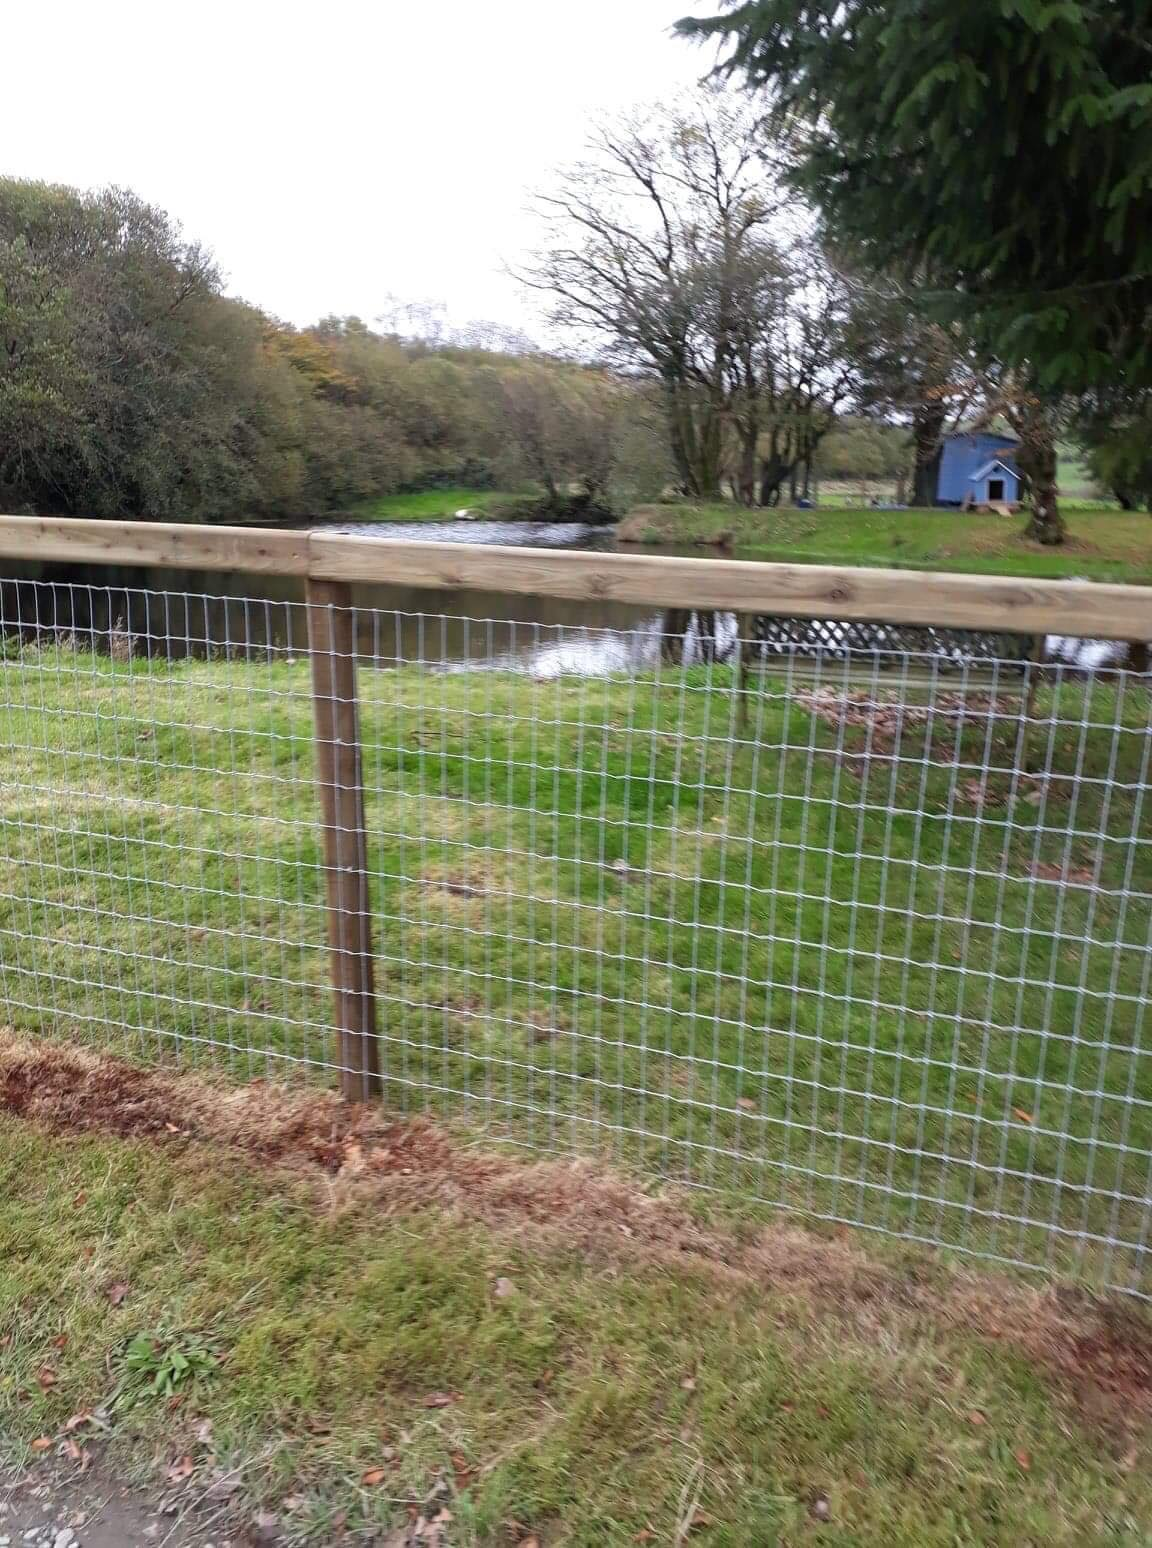 Post and wire fencing to stop small mammals getting into the enclosure